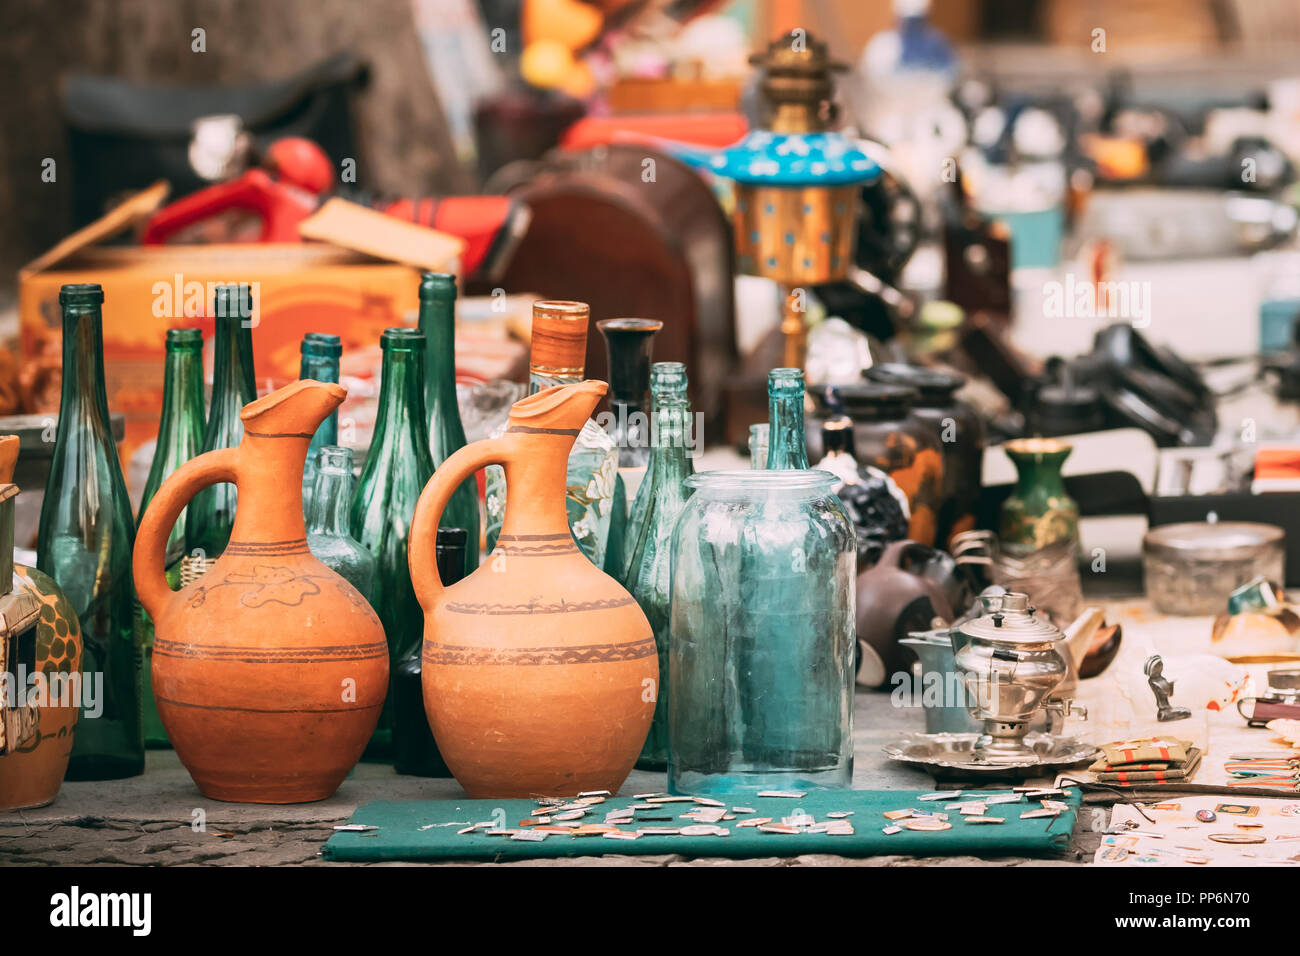 Georgia Tbilisi Flea Market Stock Photos Georgia Tbilisi: Swap Things Stock Photos & Swap Things Stock Images